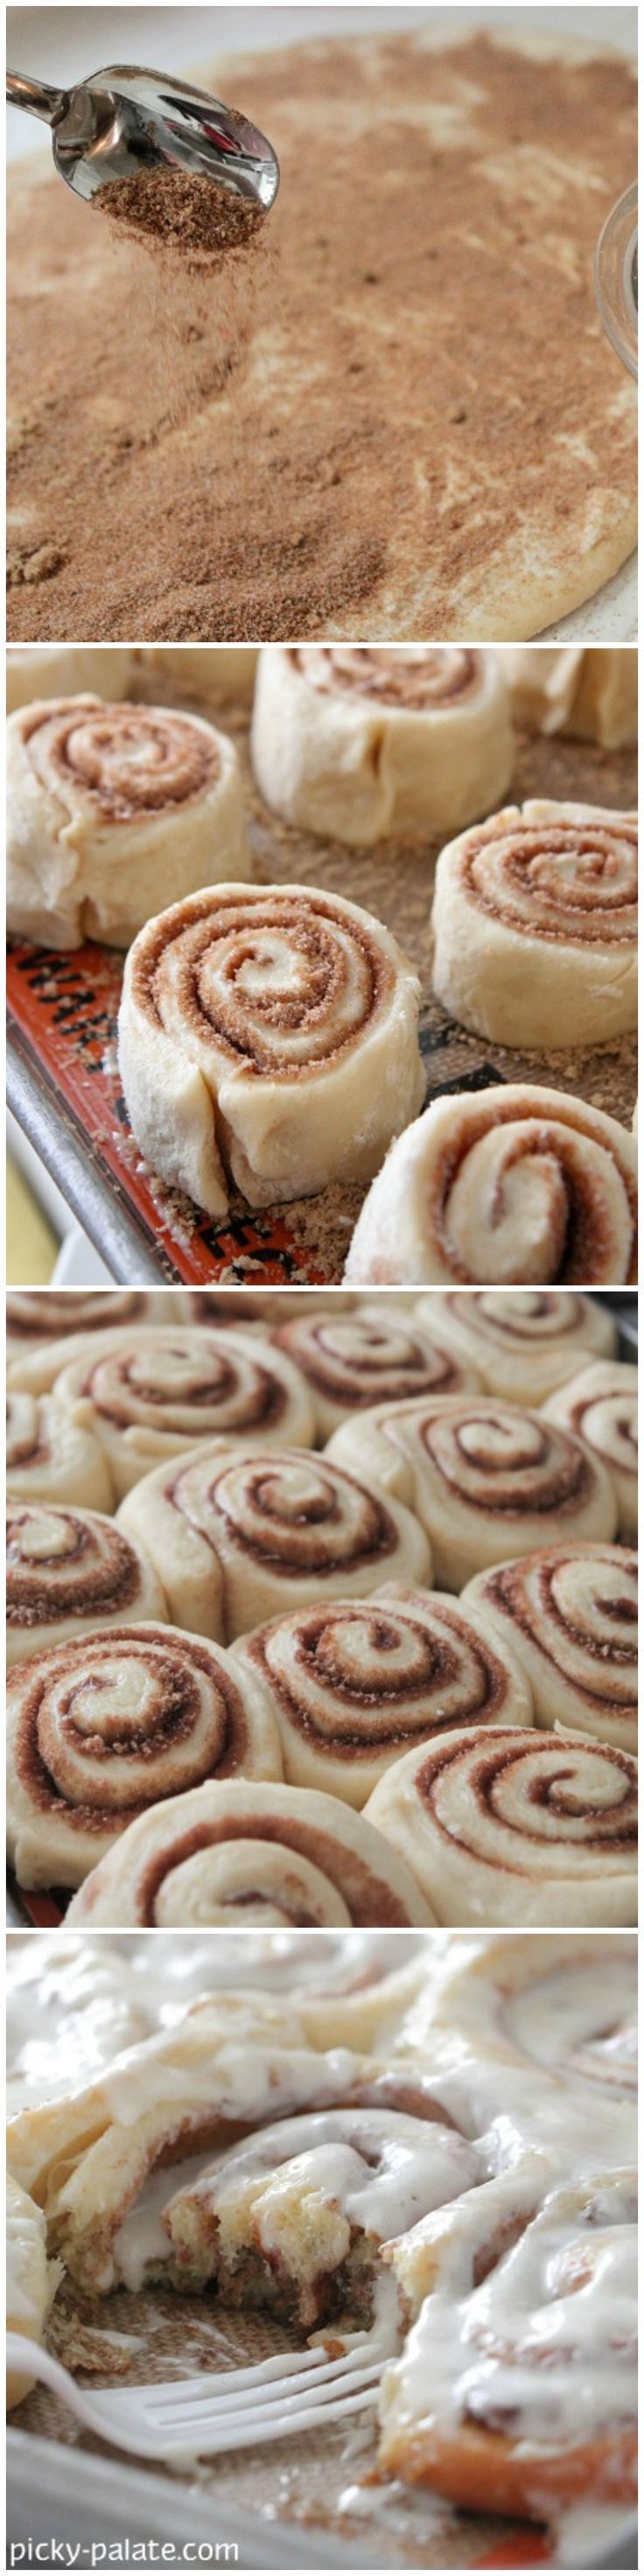 Ooey Gooey Breakfast Rolls Recipes — Dishmaps